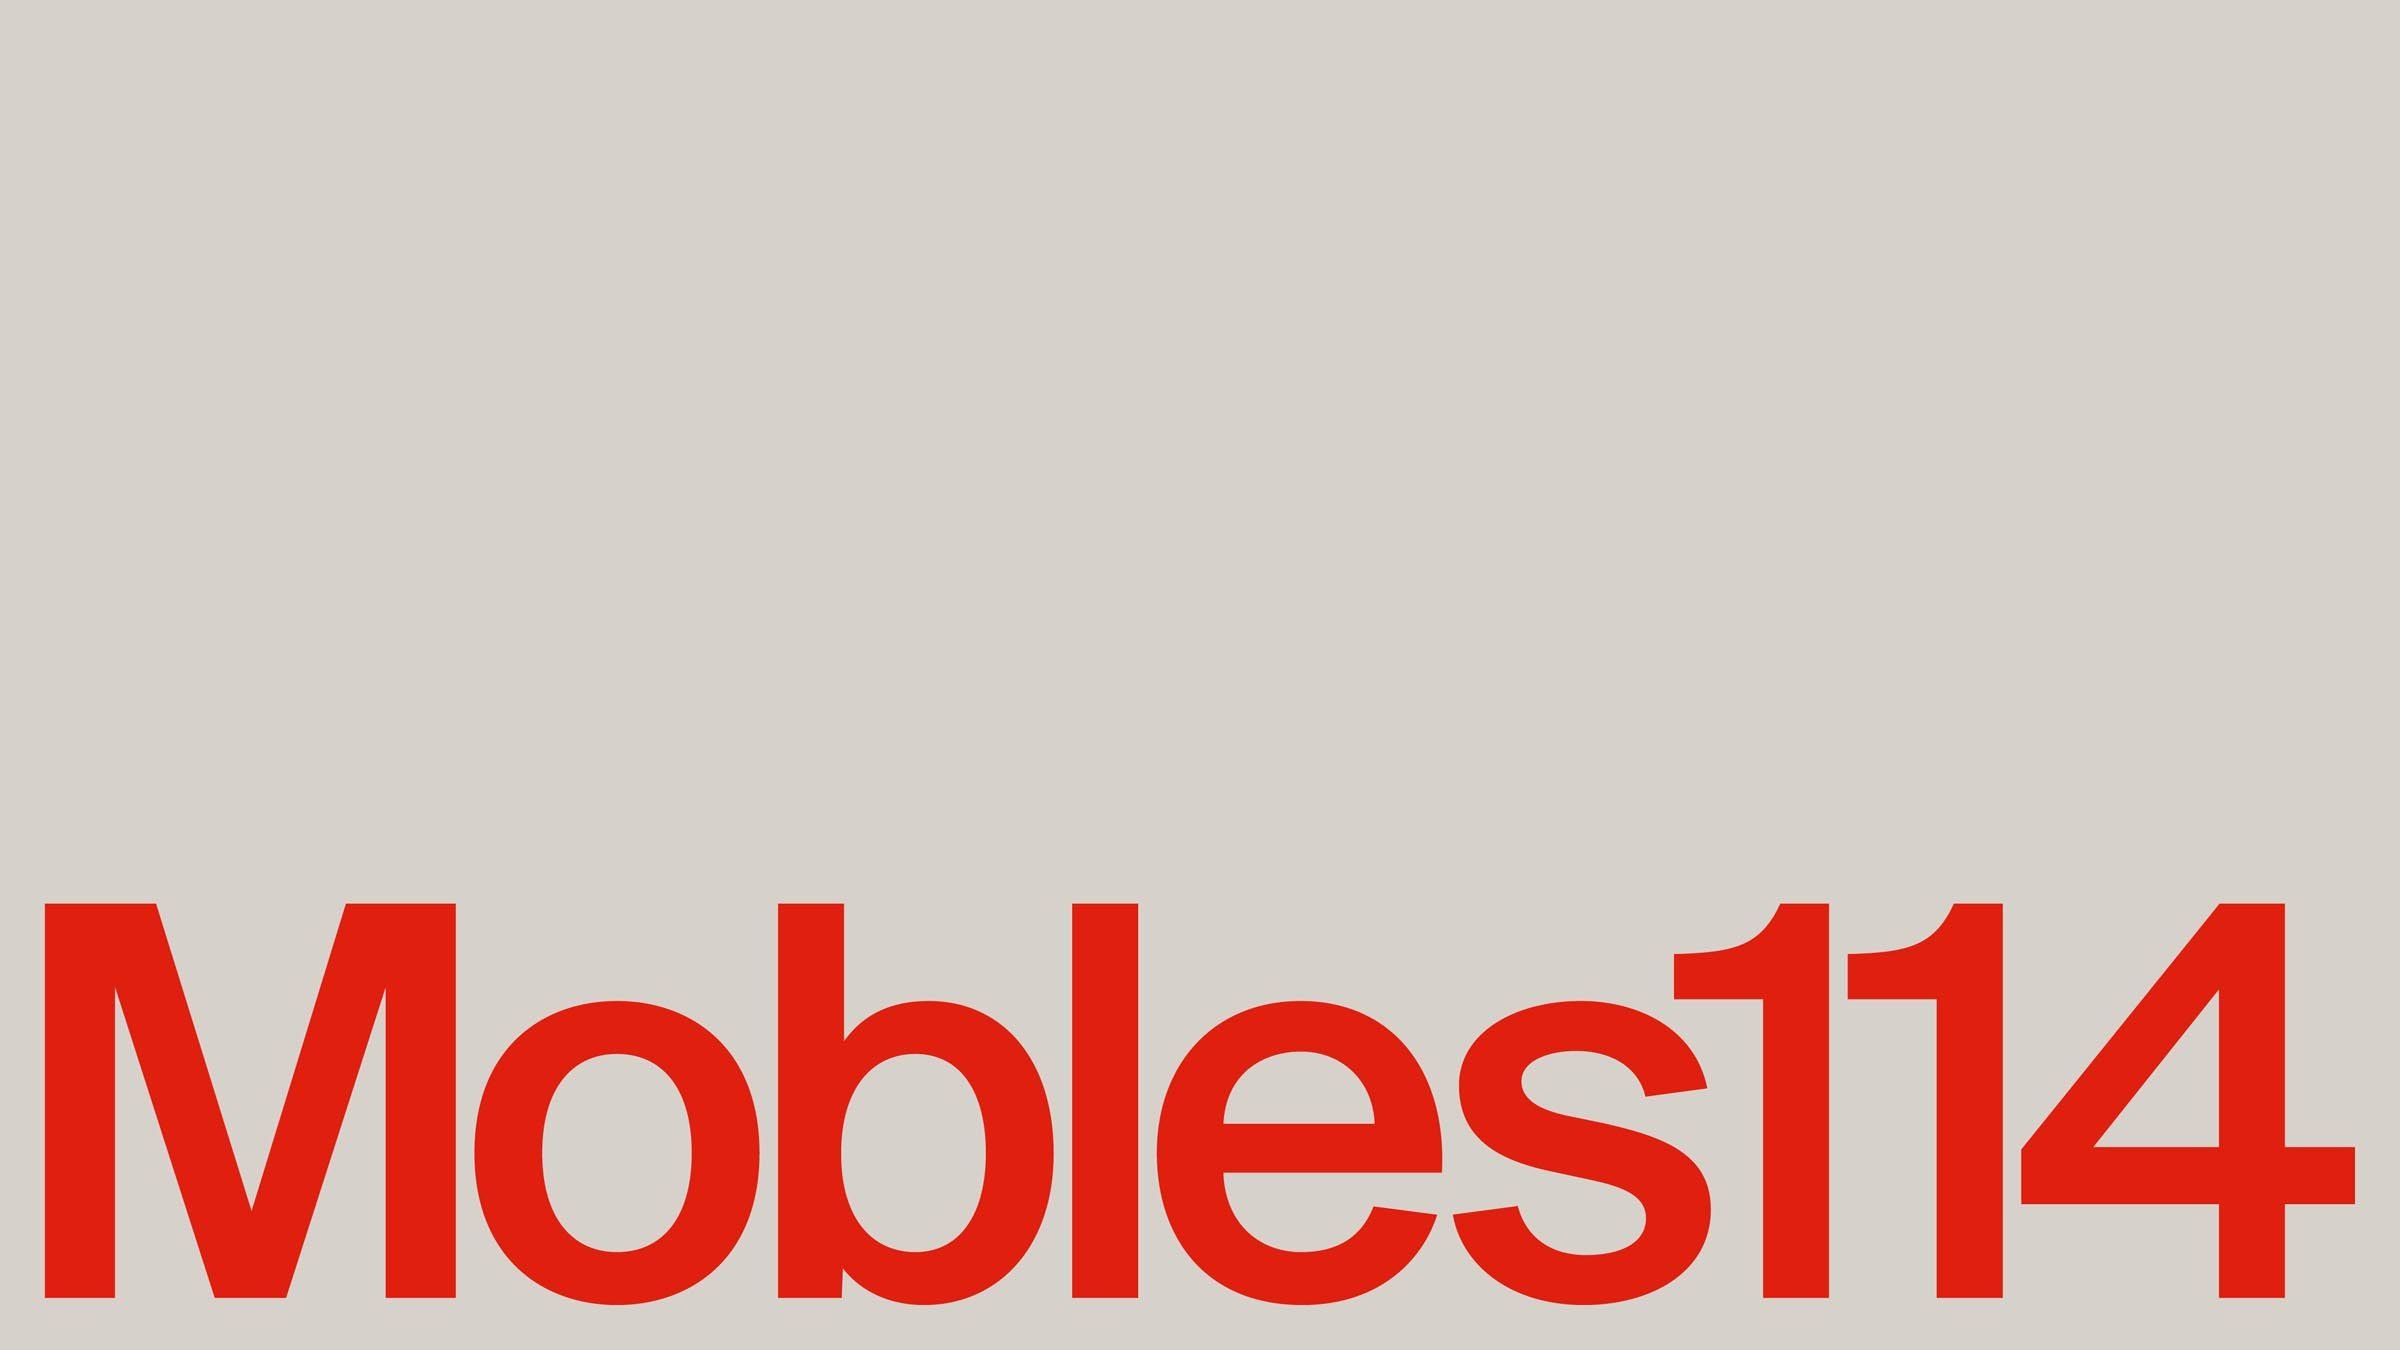 A contemporary identity for Mobles114